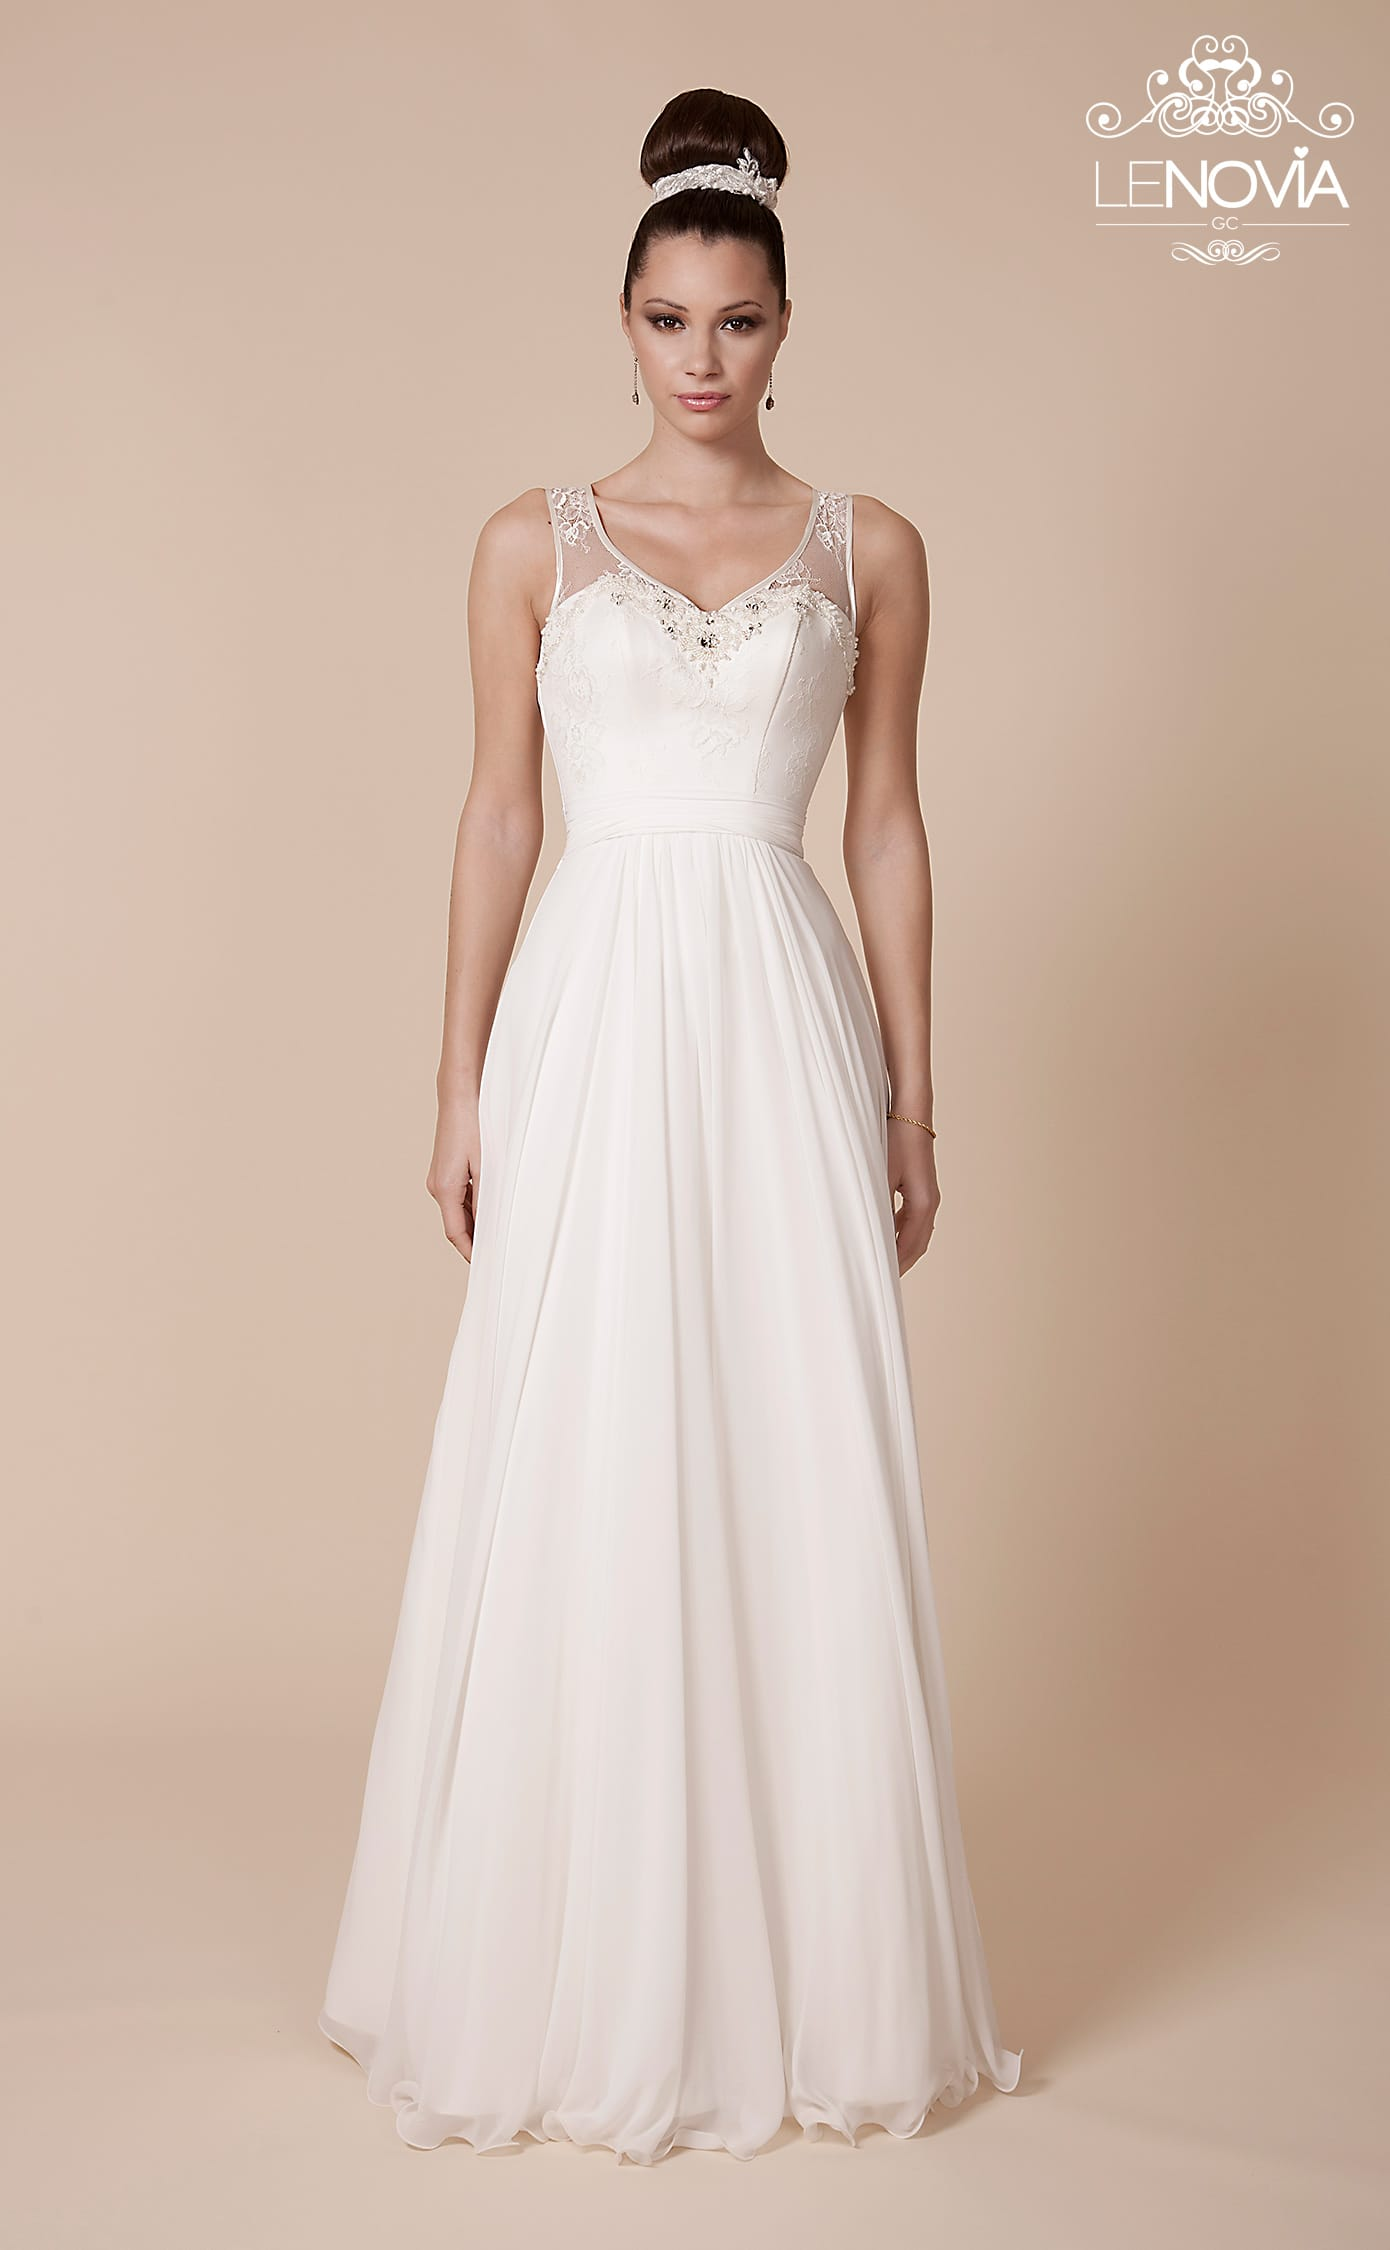 wedding dresses buy online ireland wedding bells dresses